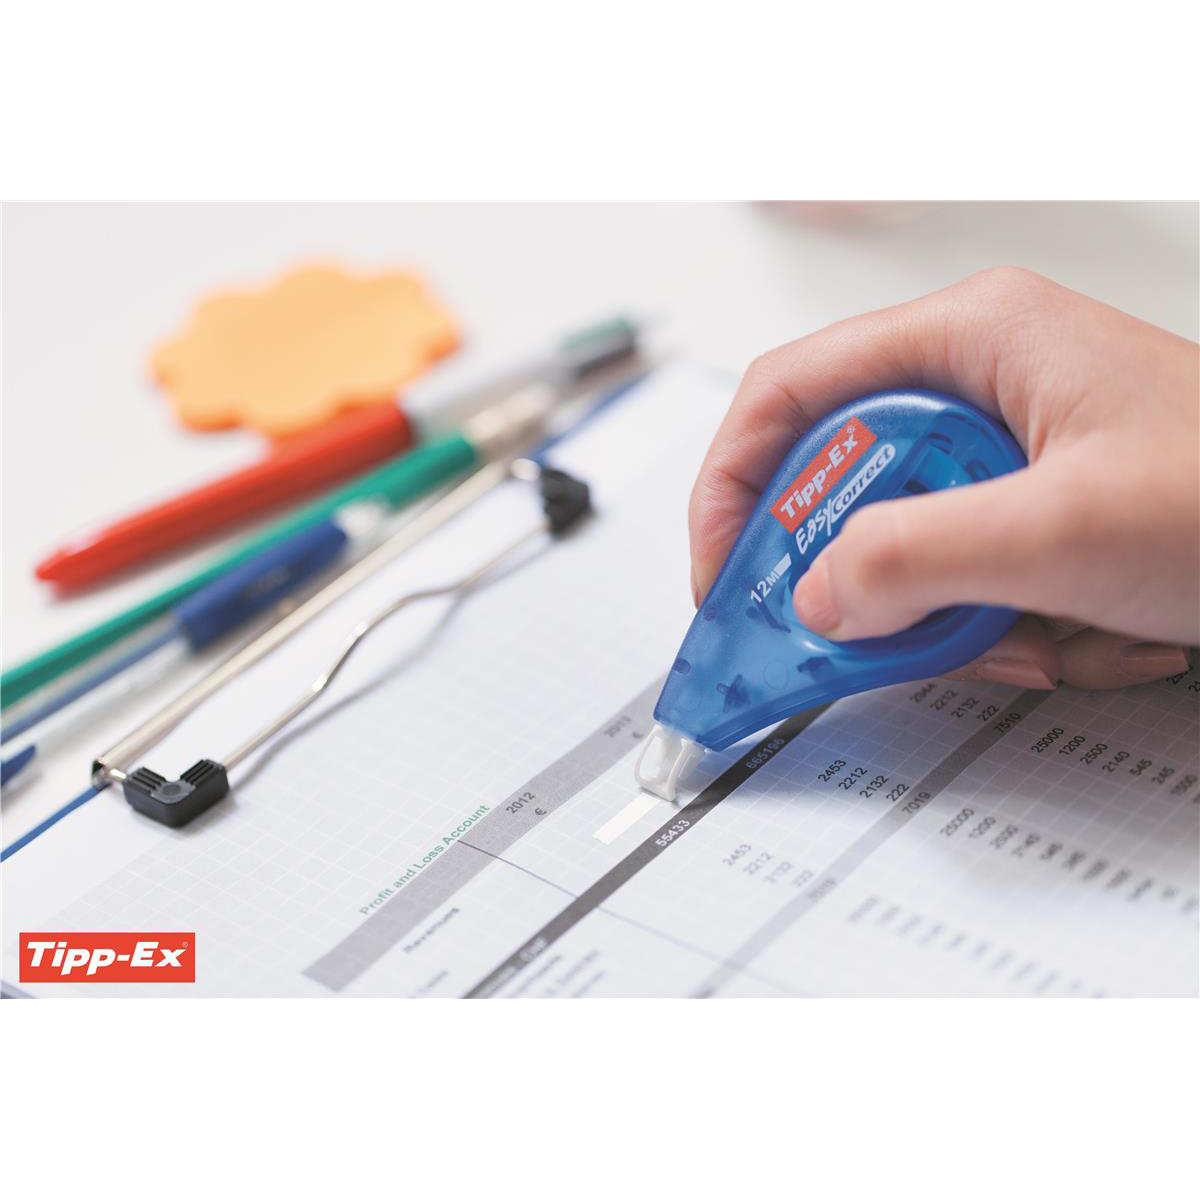 Tipp-Ex Easy-correct Correction Tape Roller 4.2mmx12m Ref 8290352 Pack 10